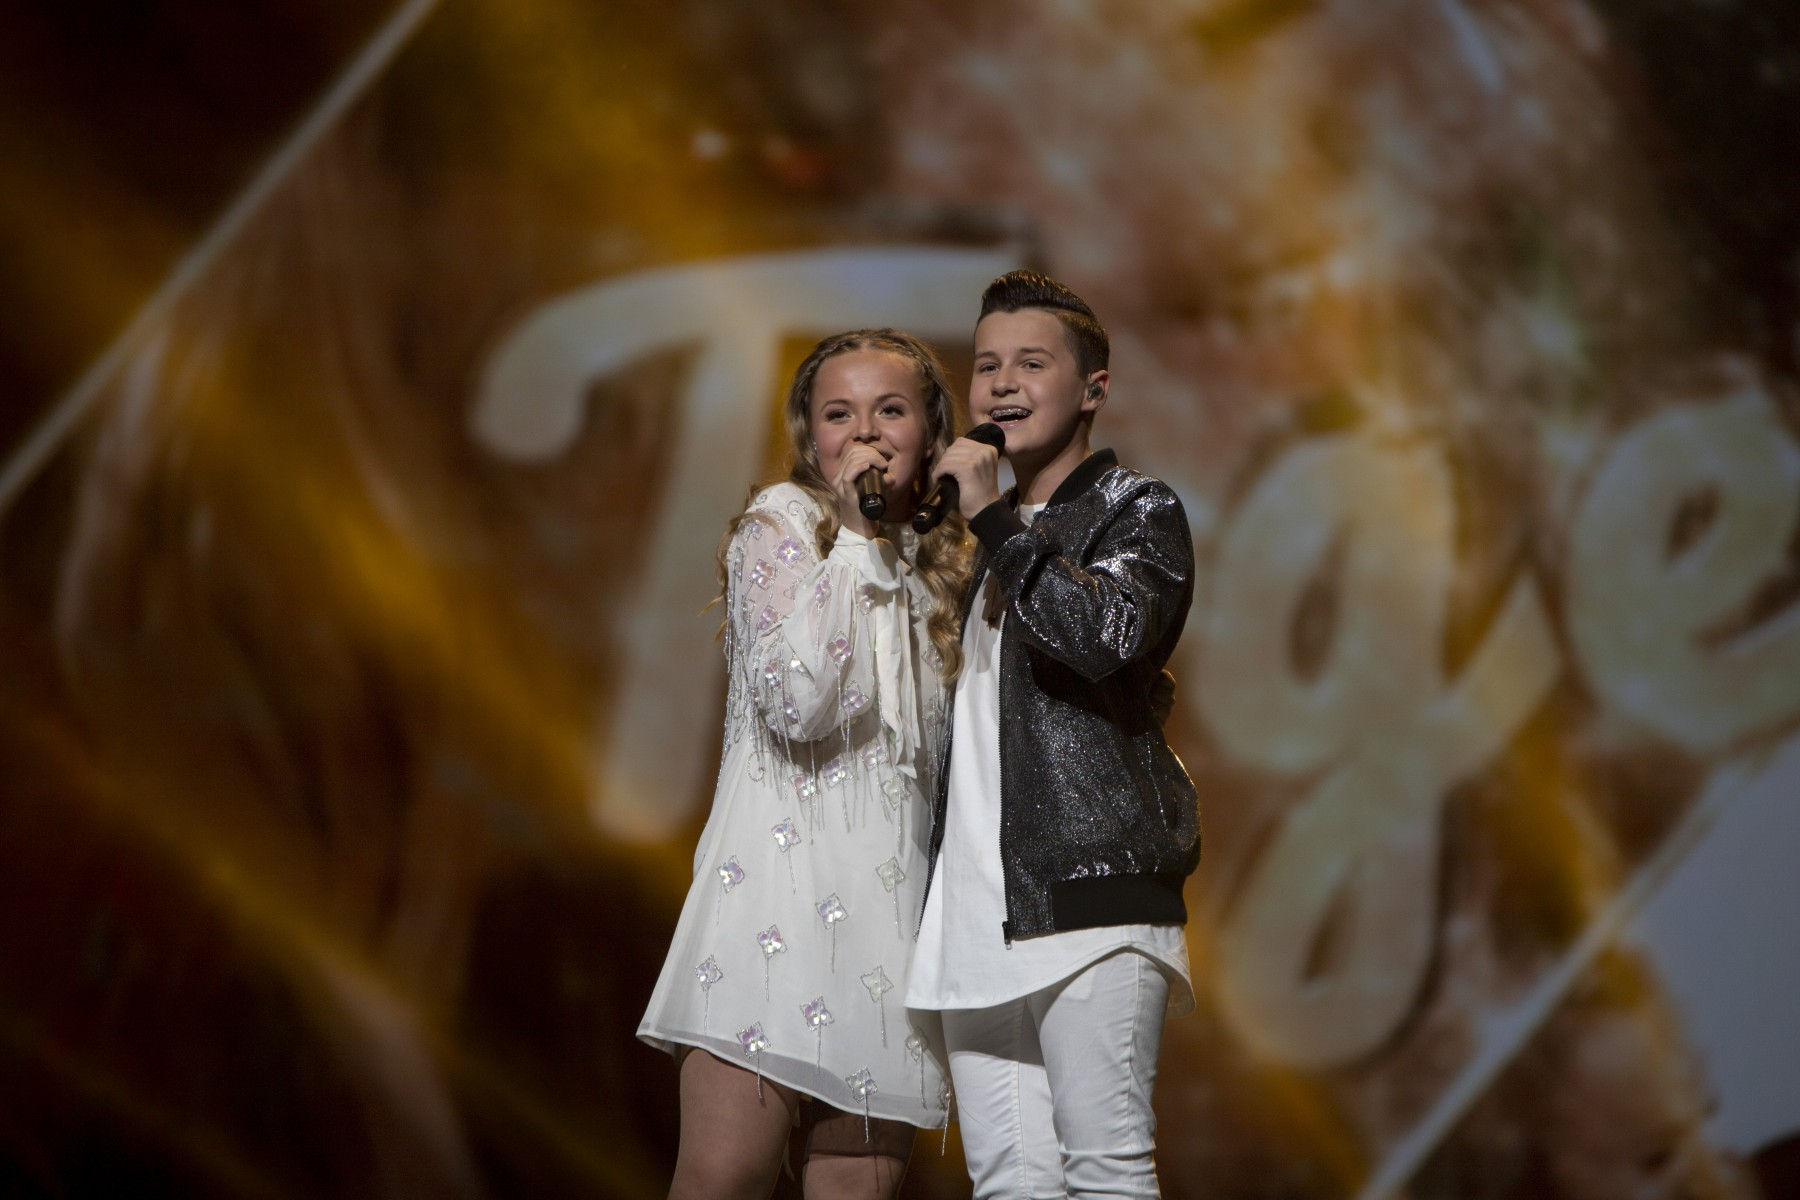 Max & Anne | Junior Eurovisie Songfestival